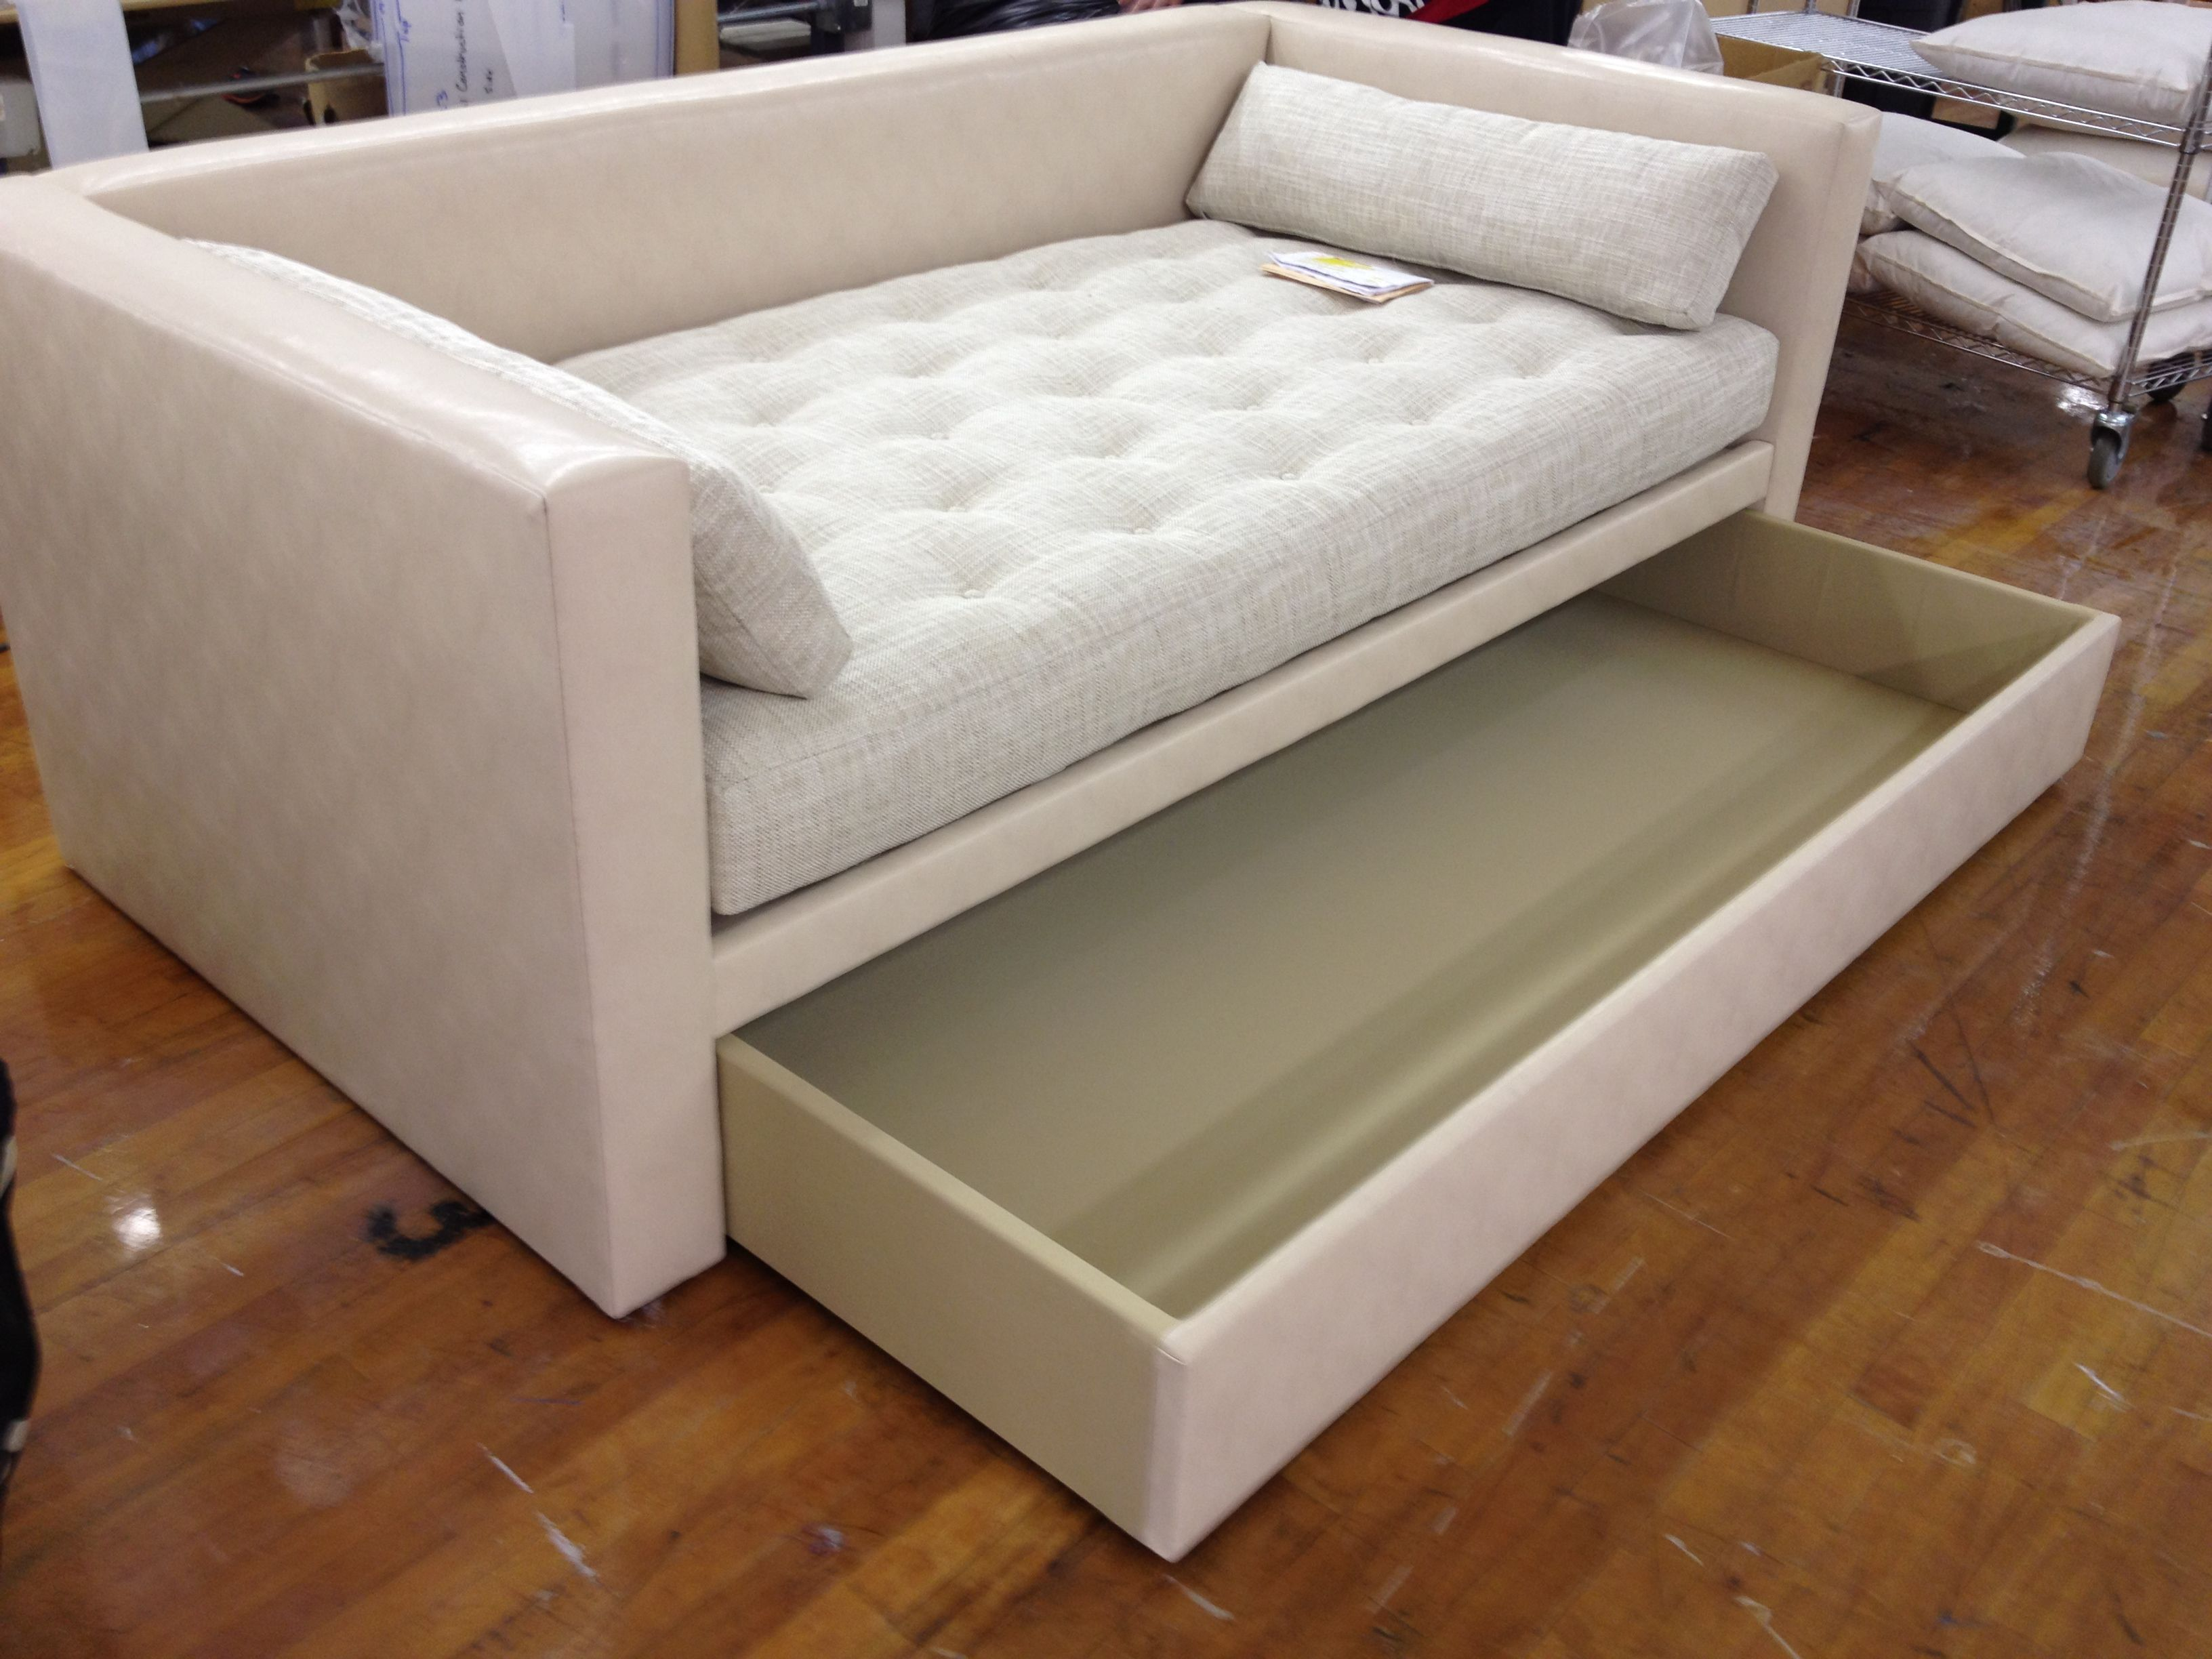 Trundle bed sofa porter m2m divan into a custom sized for Divan storage bed mattress